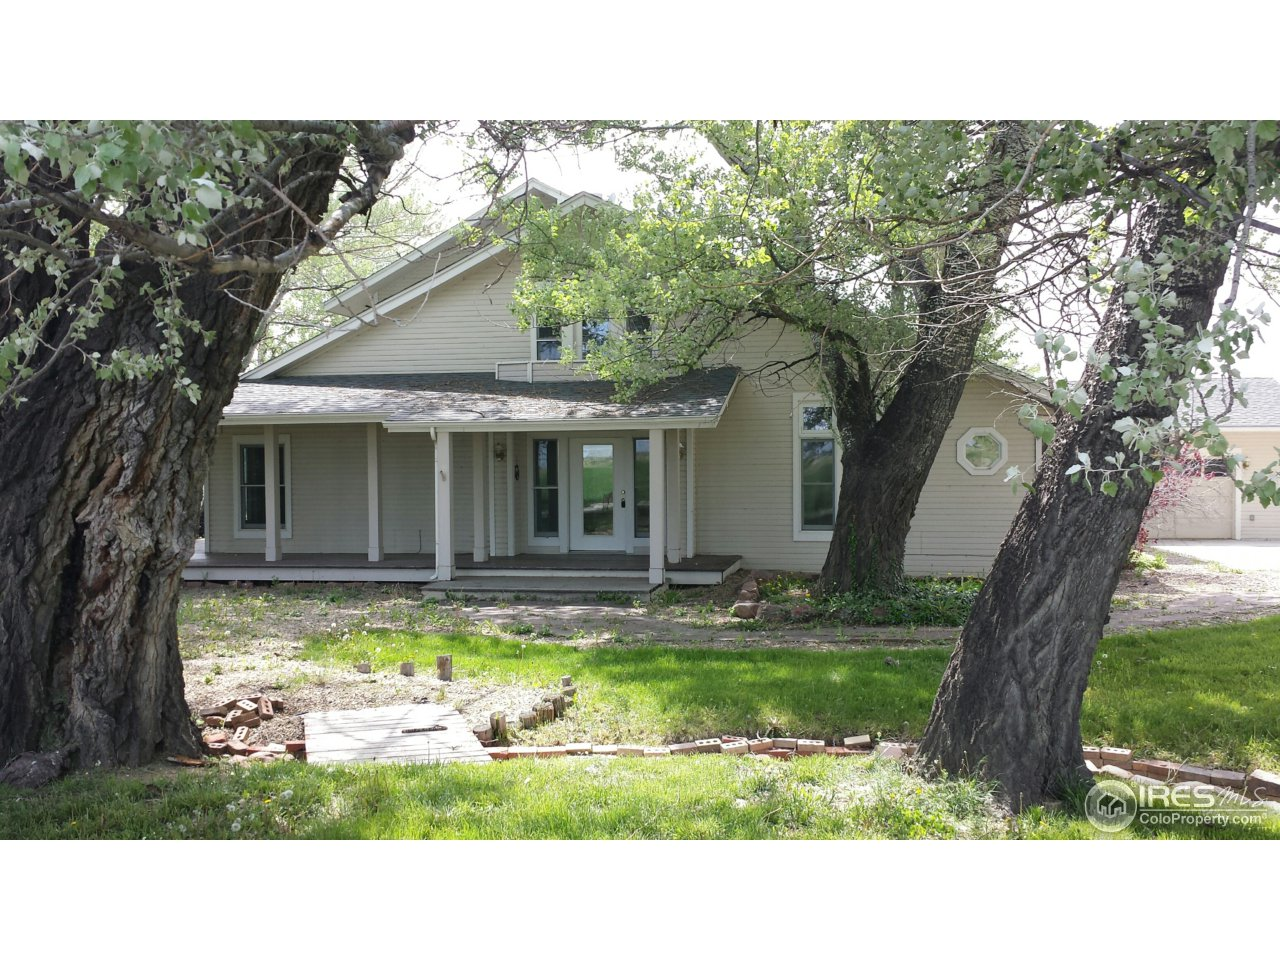 13781 N 115th St, Longmont CO 80504